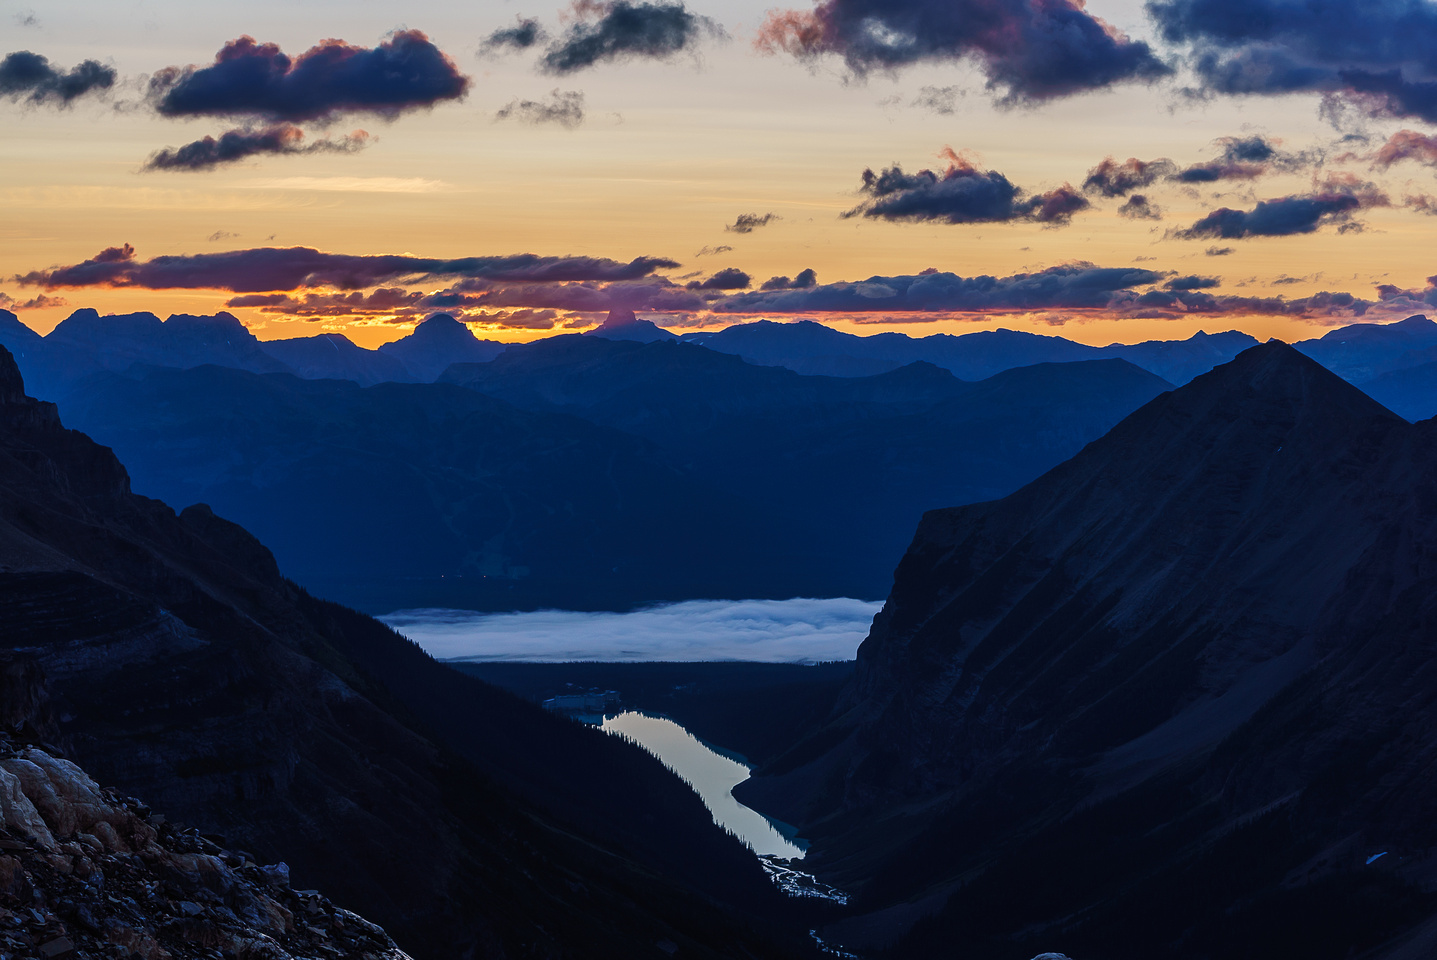 Sunrise over Lake Louise - Fairview on the right.